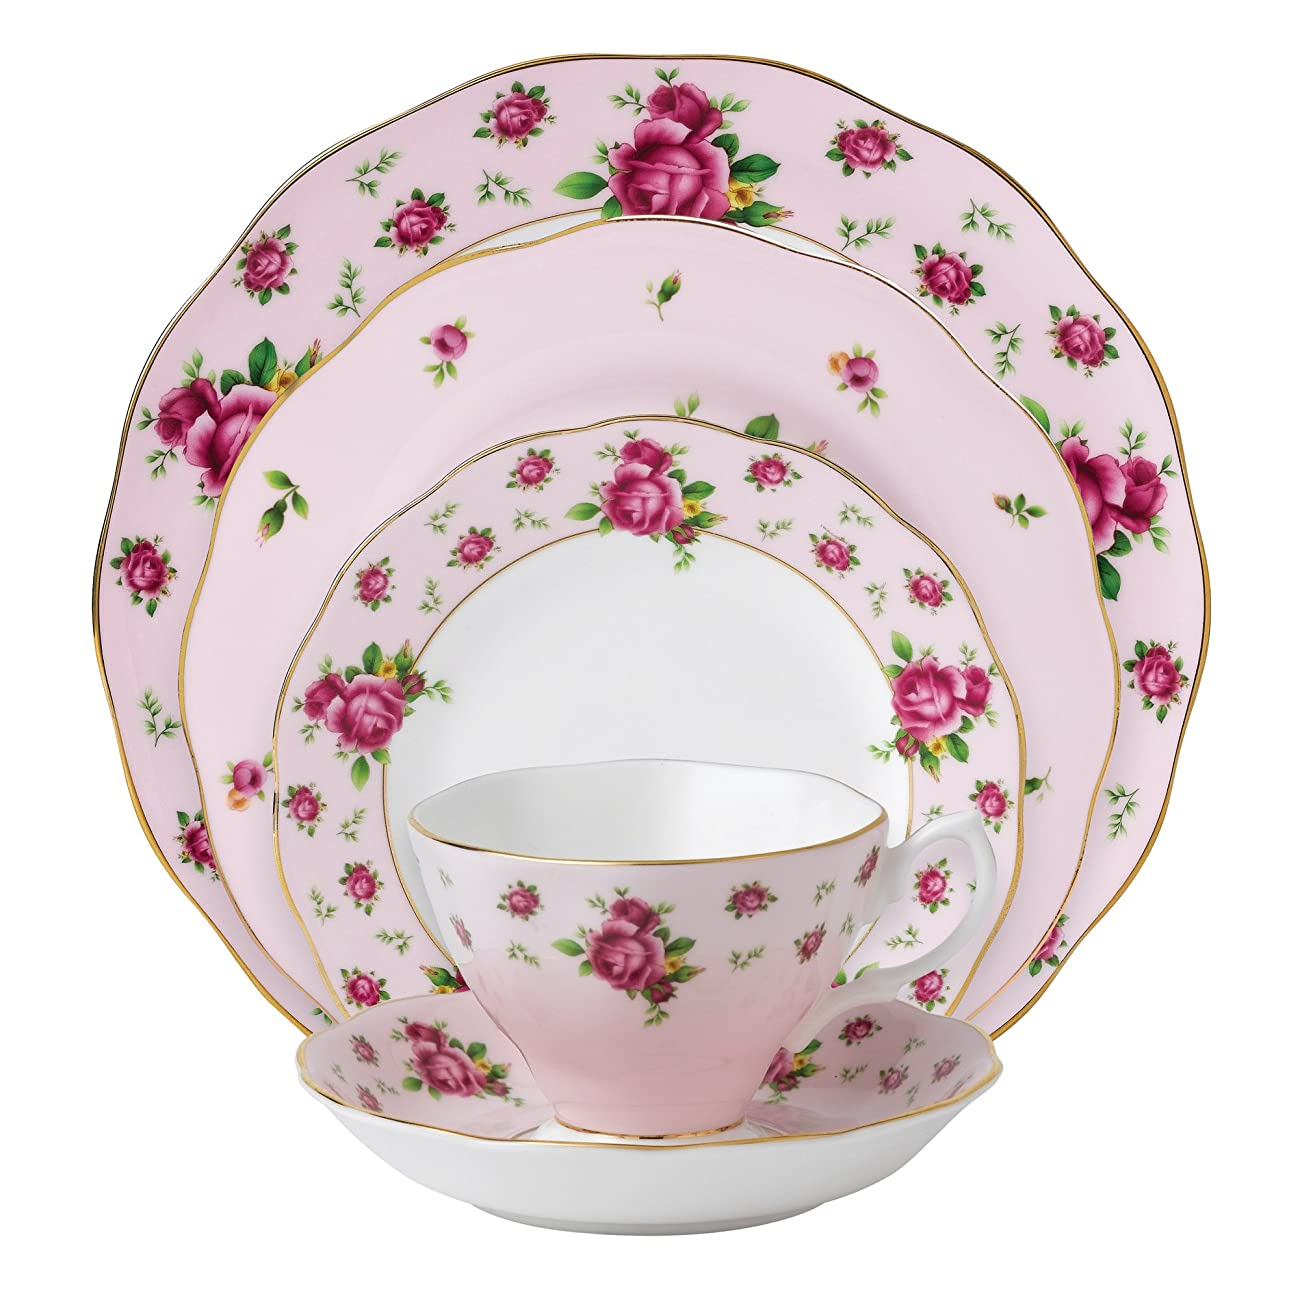 Royal Albert New Country Roses Pink Vintage Formal Place Setting, 5-Piece 0